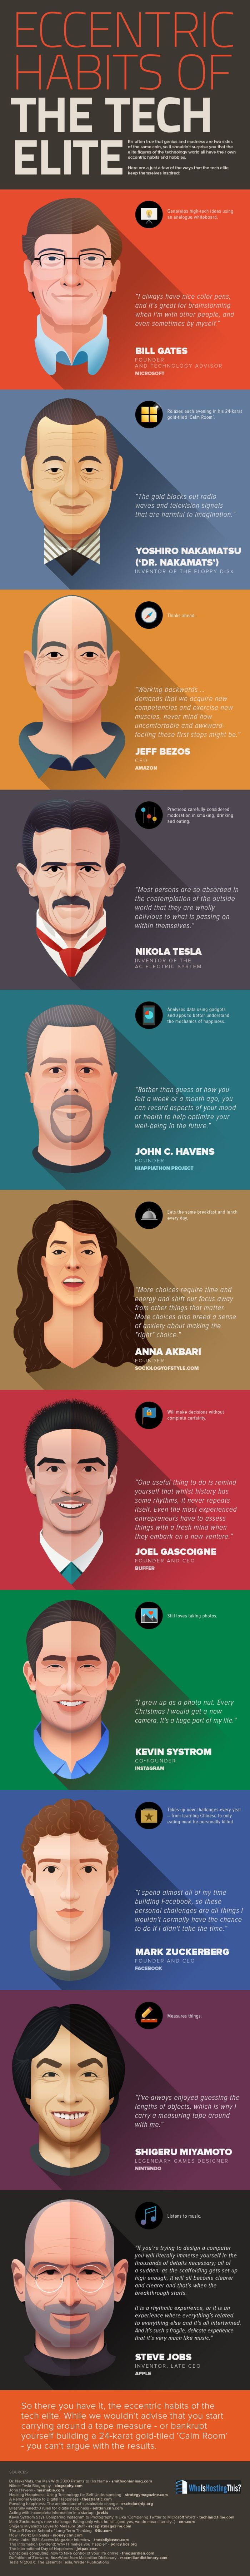 The Helpful Habits Of The Tech Elite (infographic)